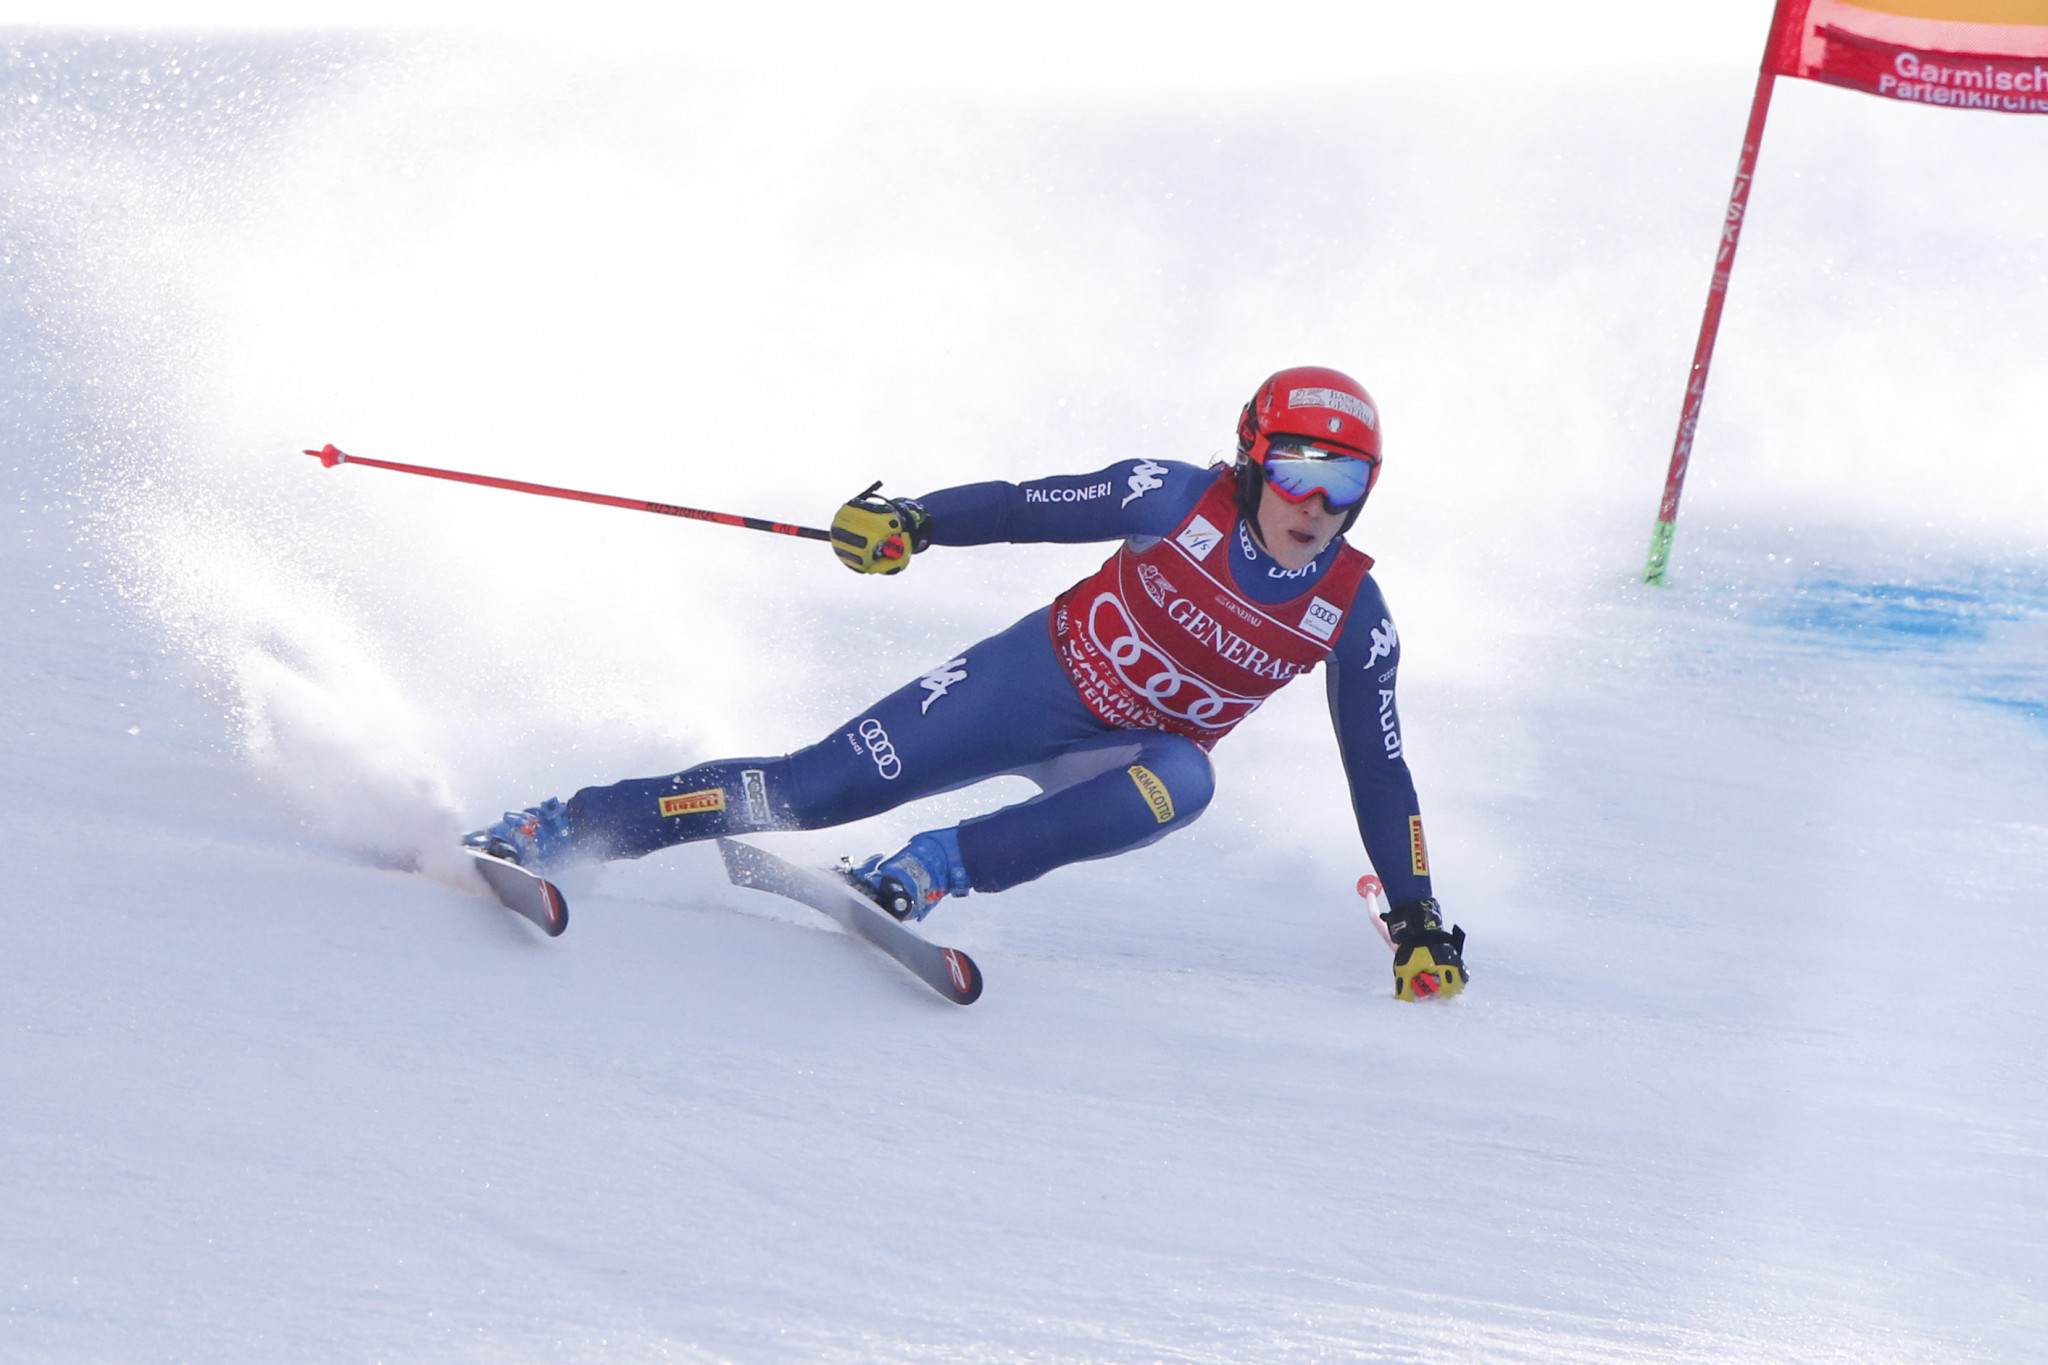 Brignone set to boost FIS Alpine Ski World Cup hopes in Slovenia as Shiffrin absence continues